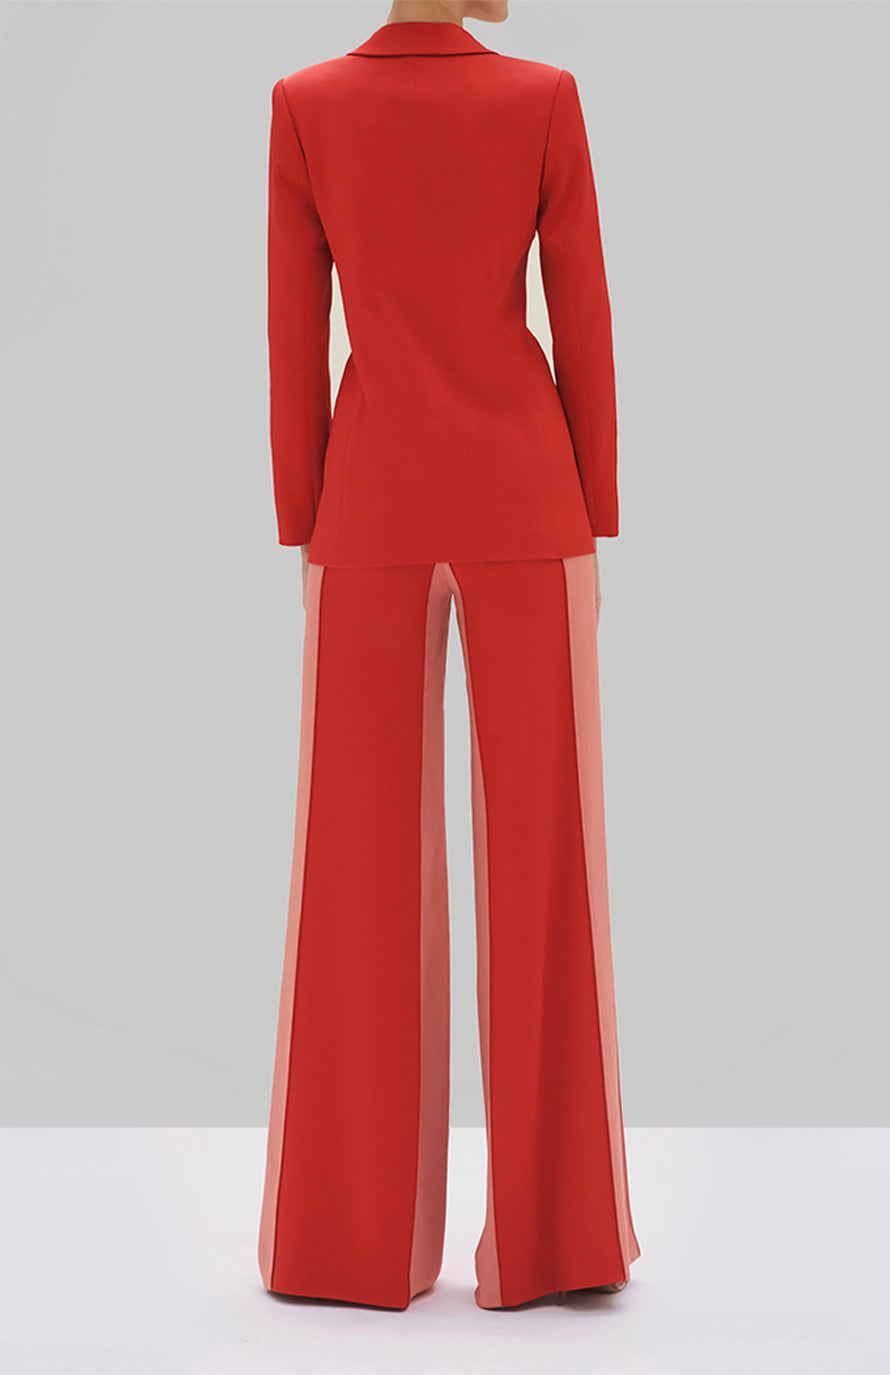 Alexis Nevra Blazer and Flin Pant Red - Rear View